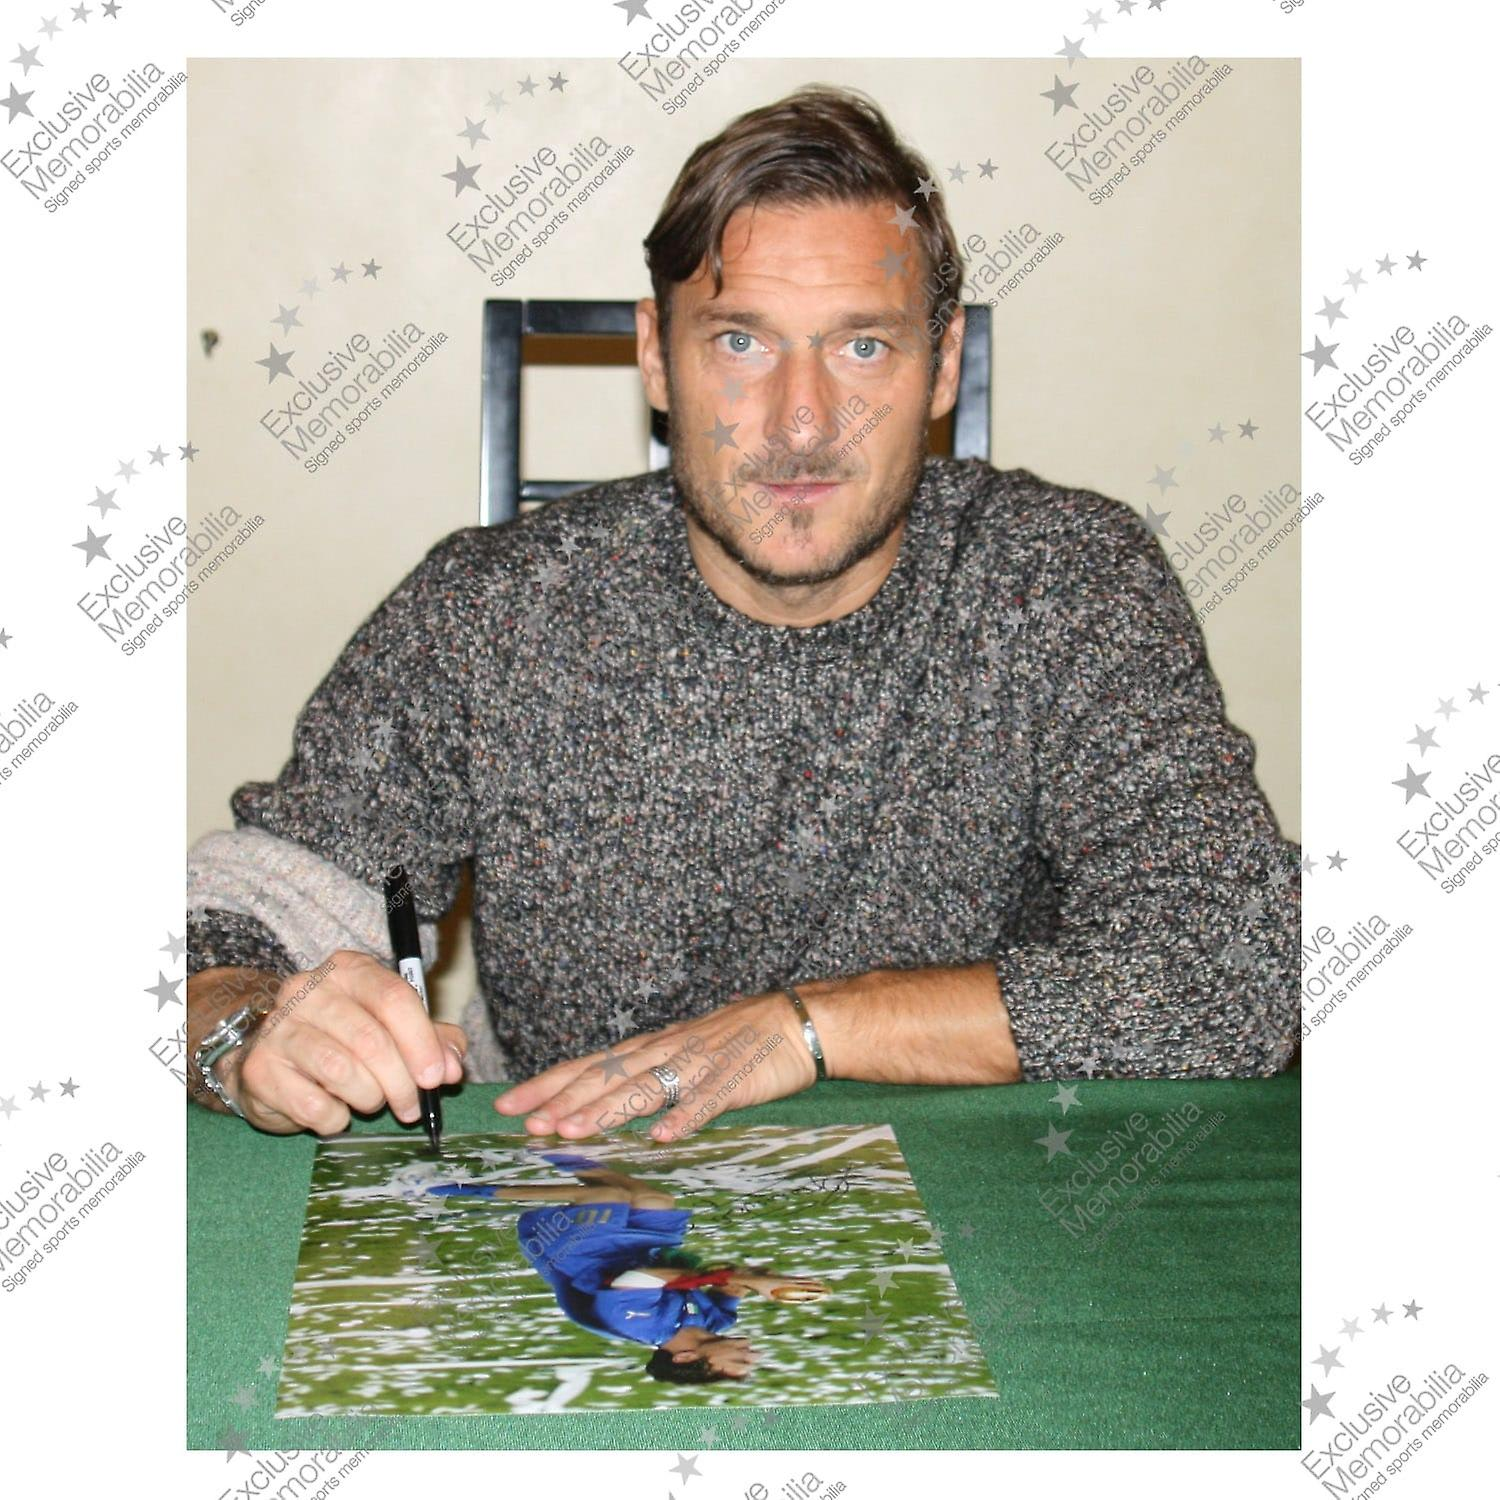 Francesco Totti Signed Italy Photo: 2006 World Cup Winner. Deluxe Frame